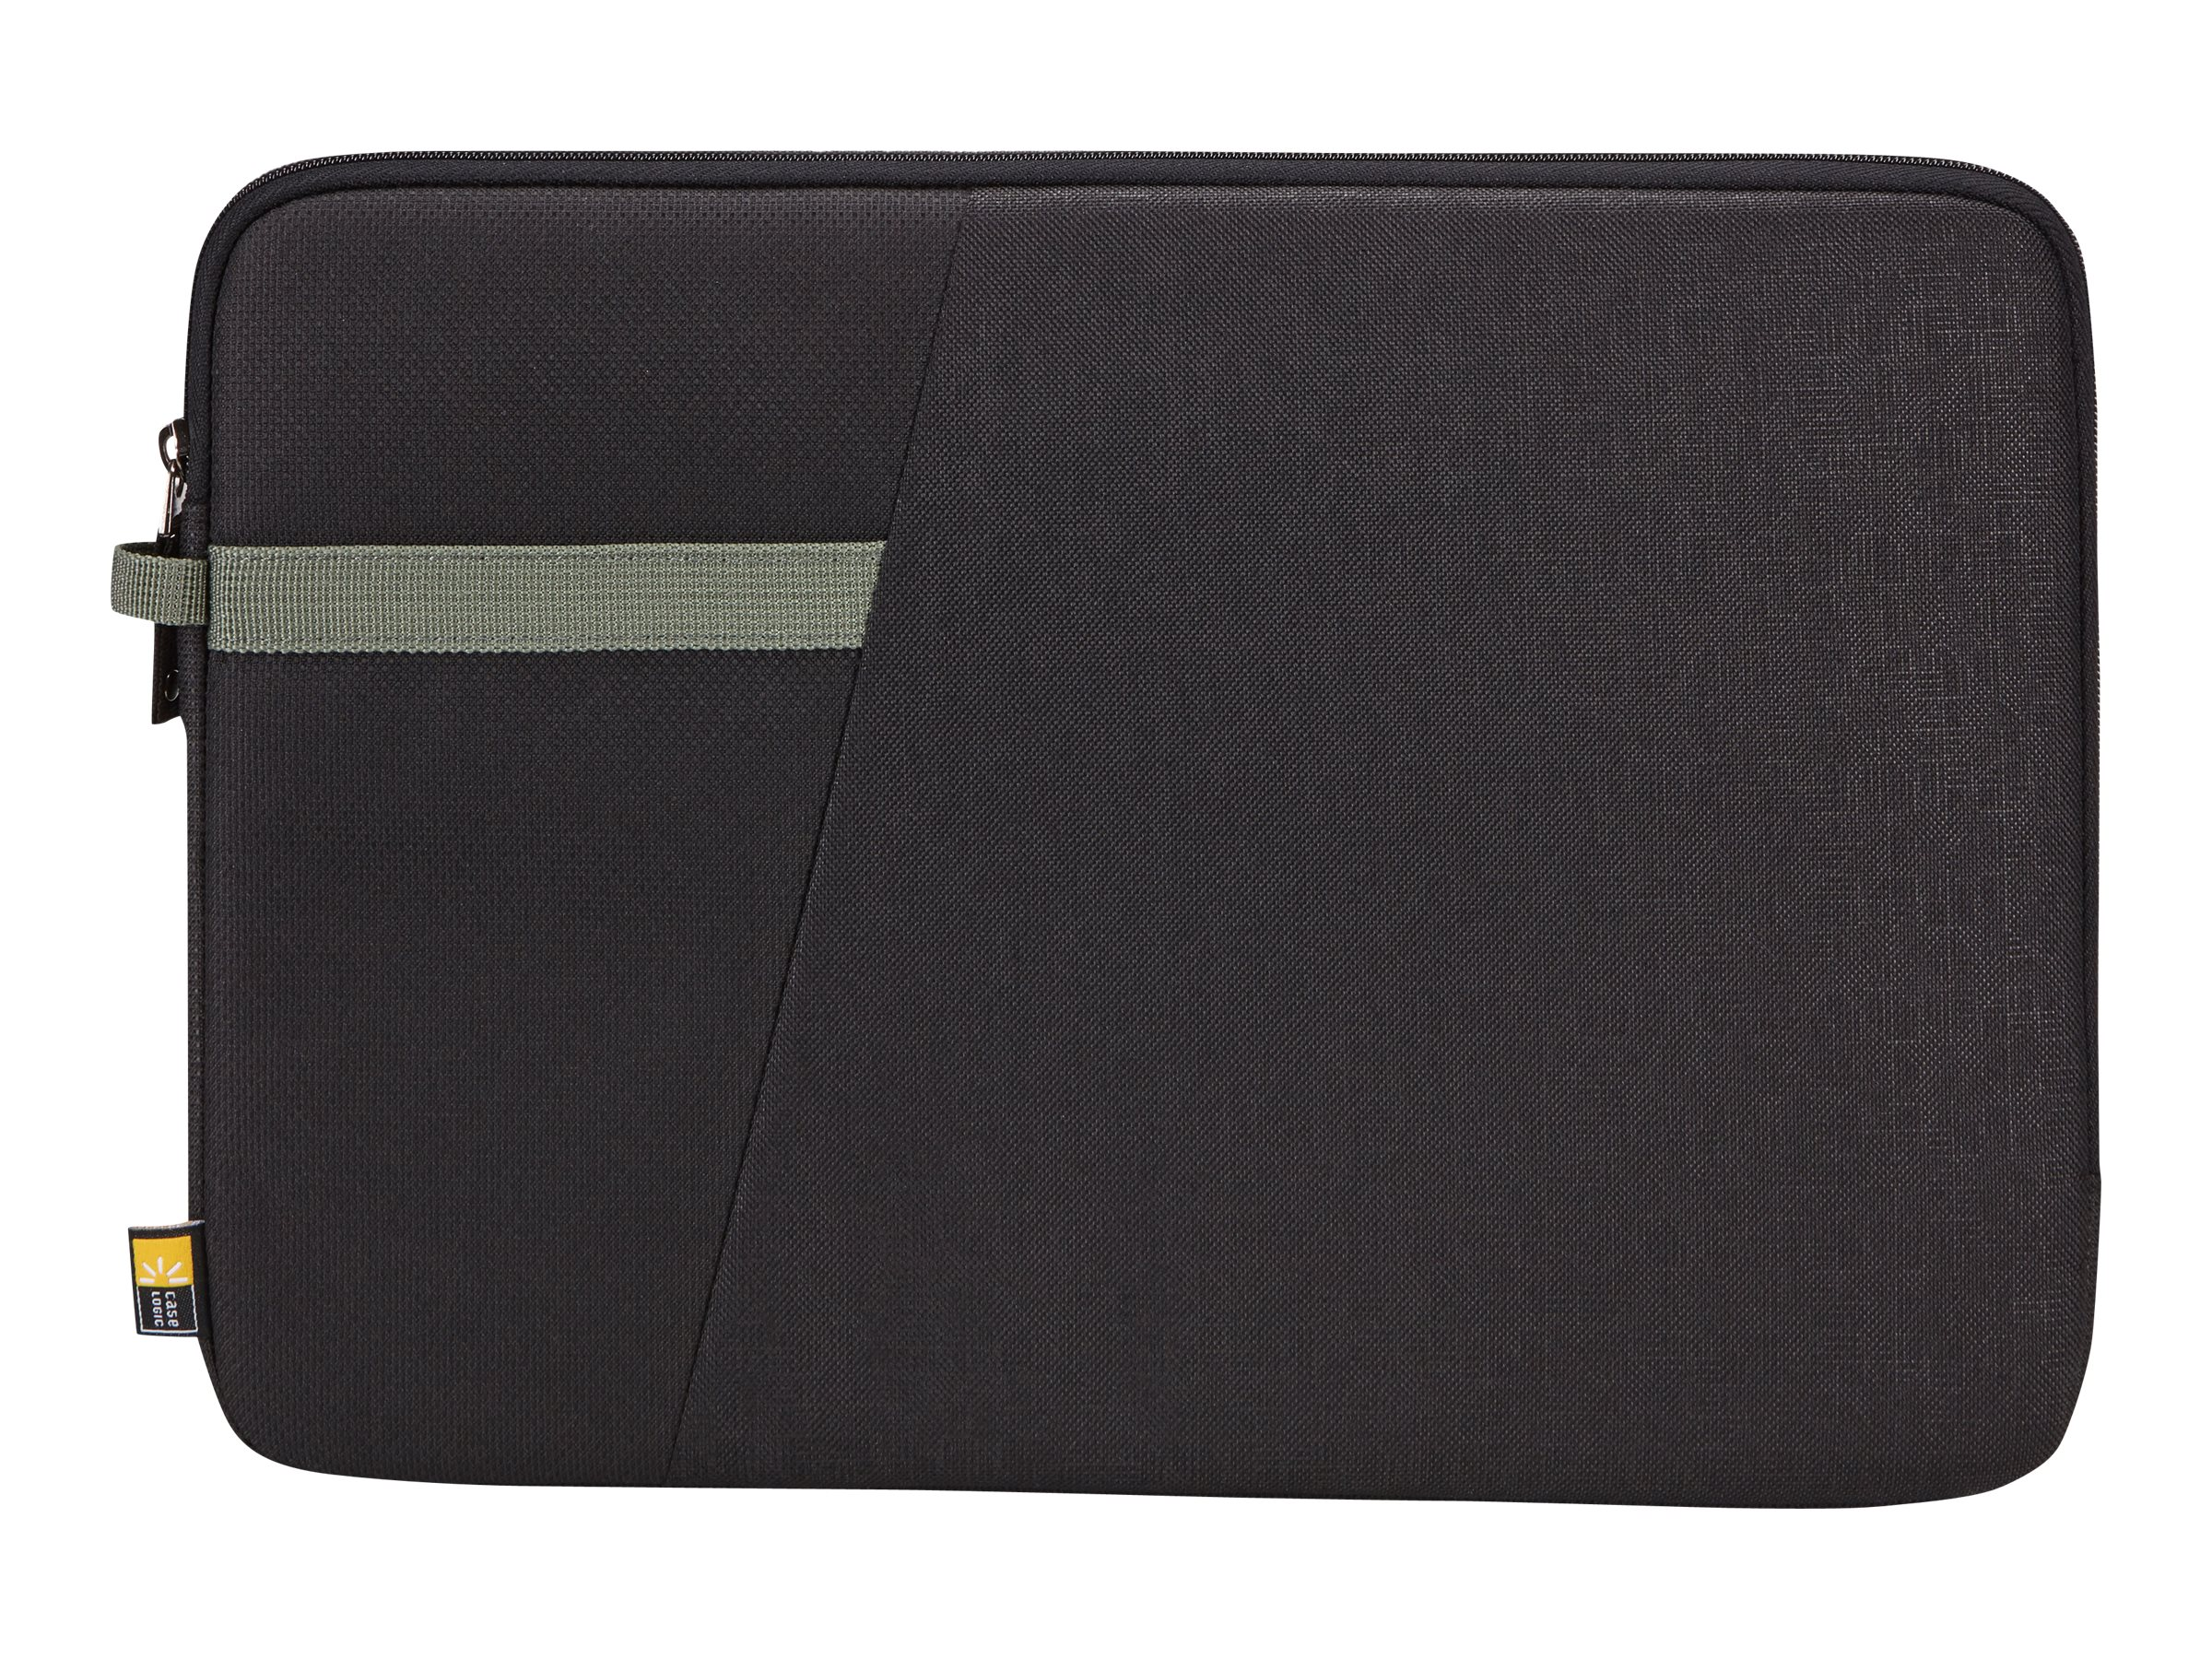 Case Logic Ibira 14 Laptop Sleeve, Black